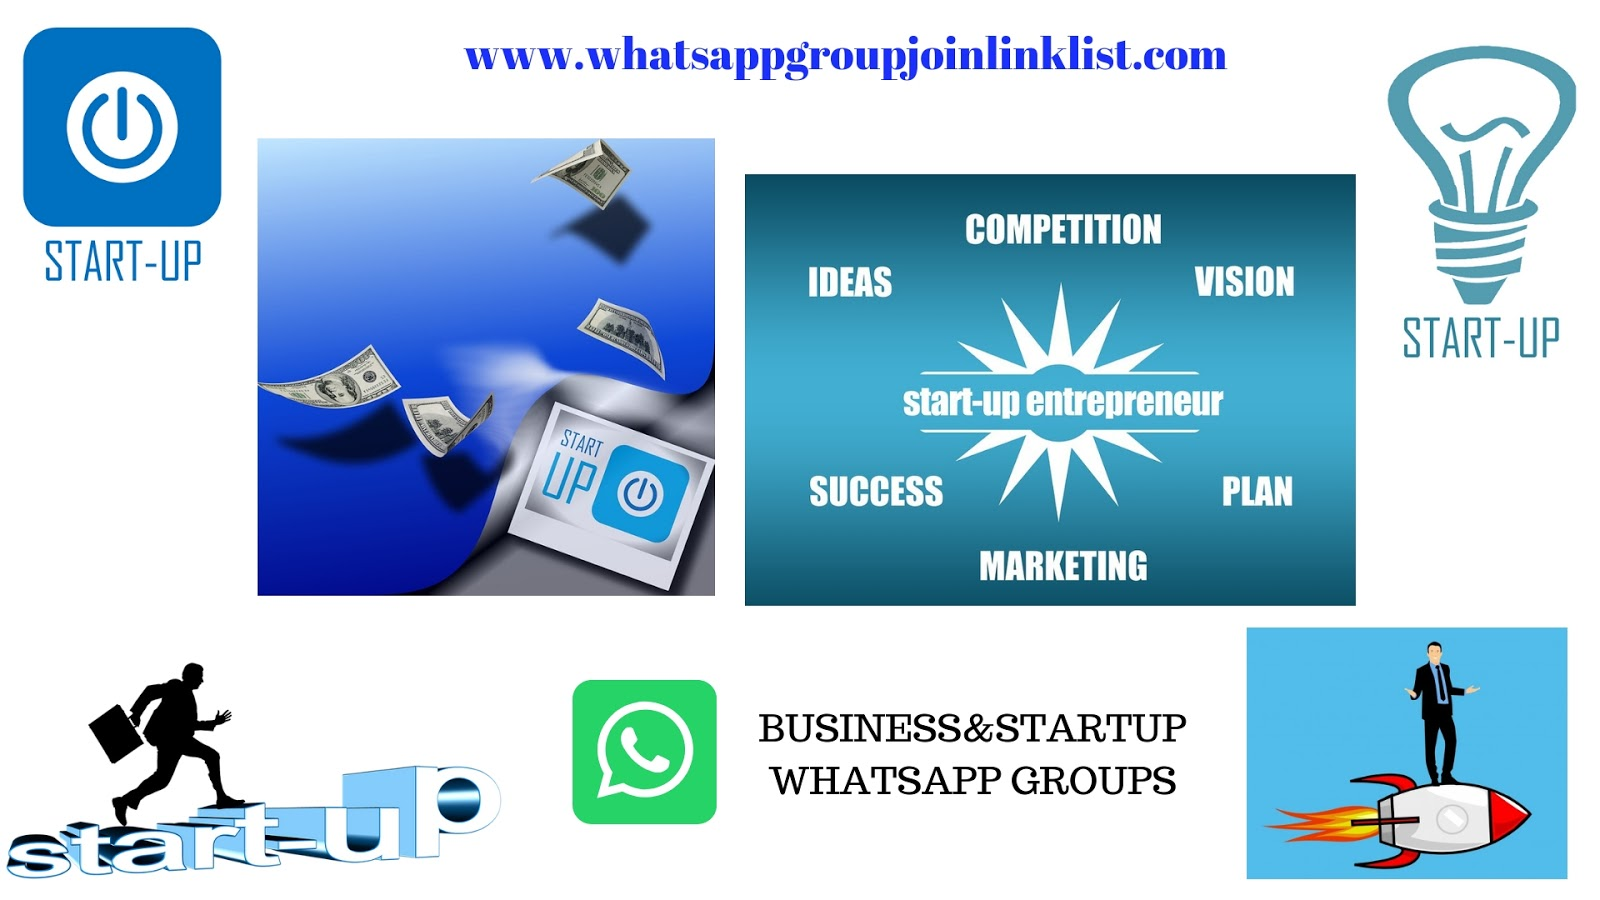 Business & Startup WhatsApp Group Join Link List